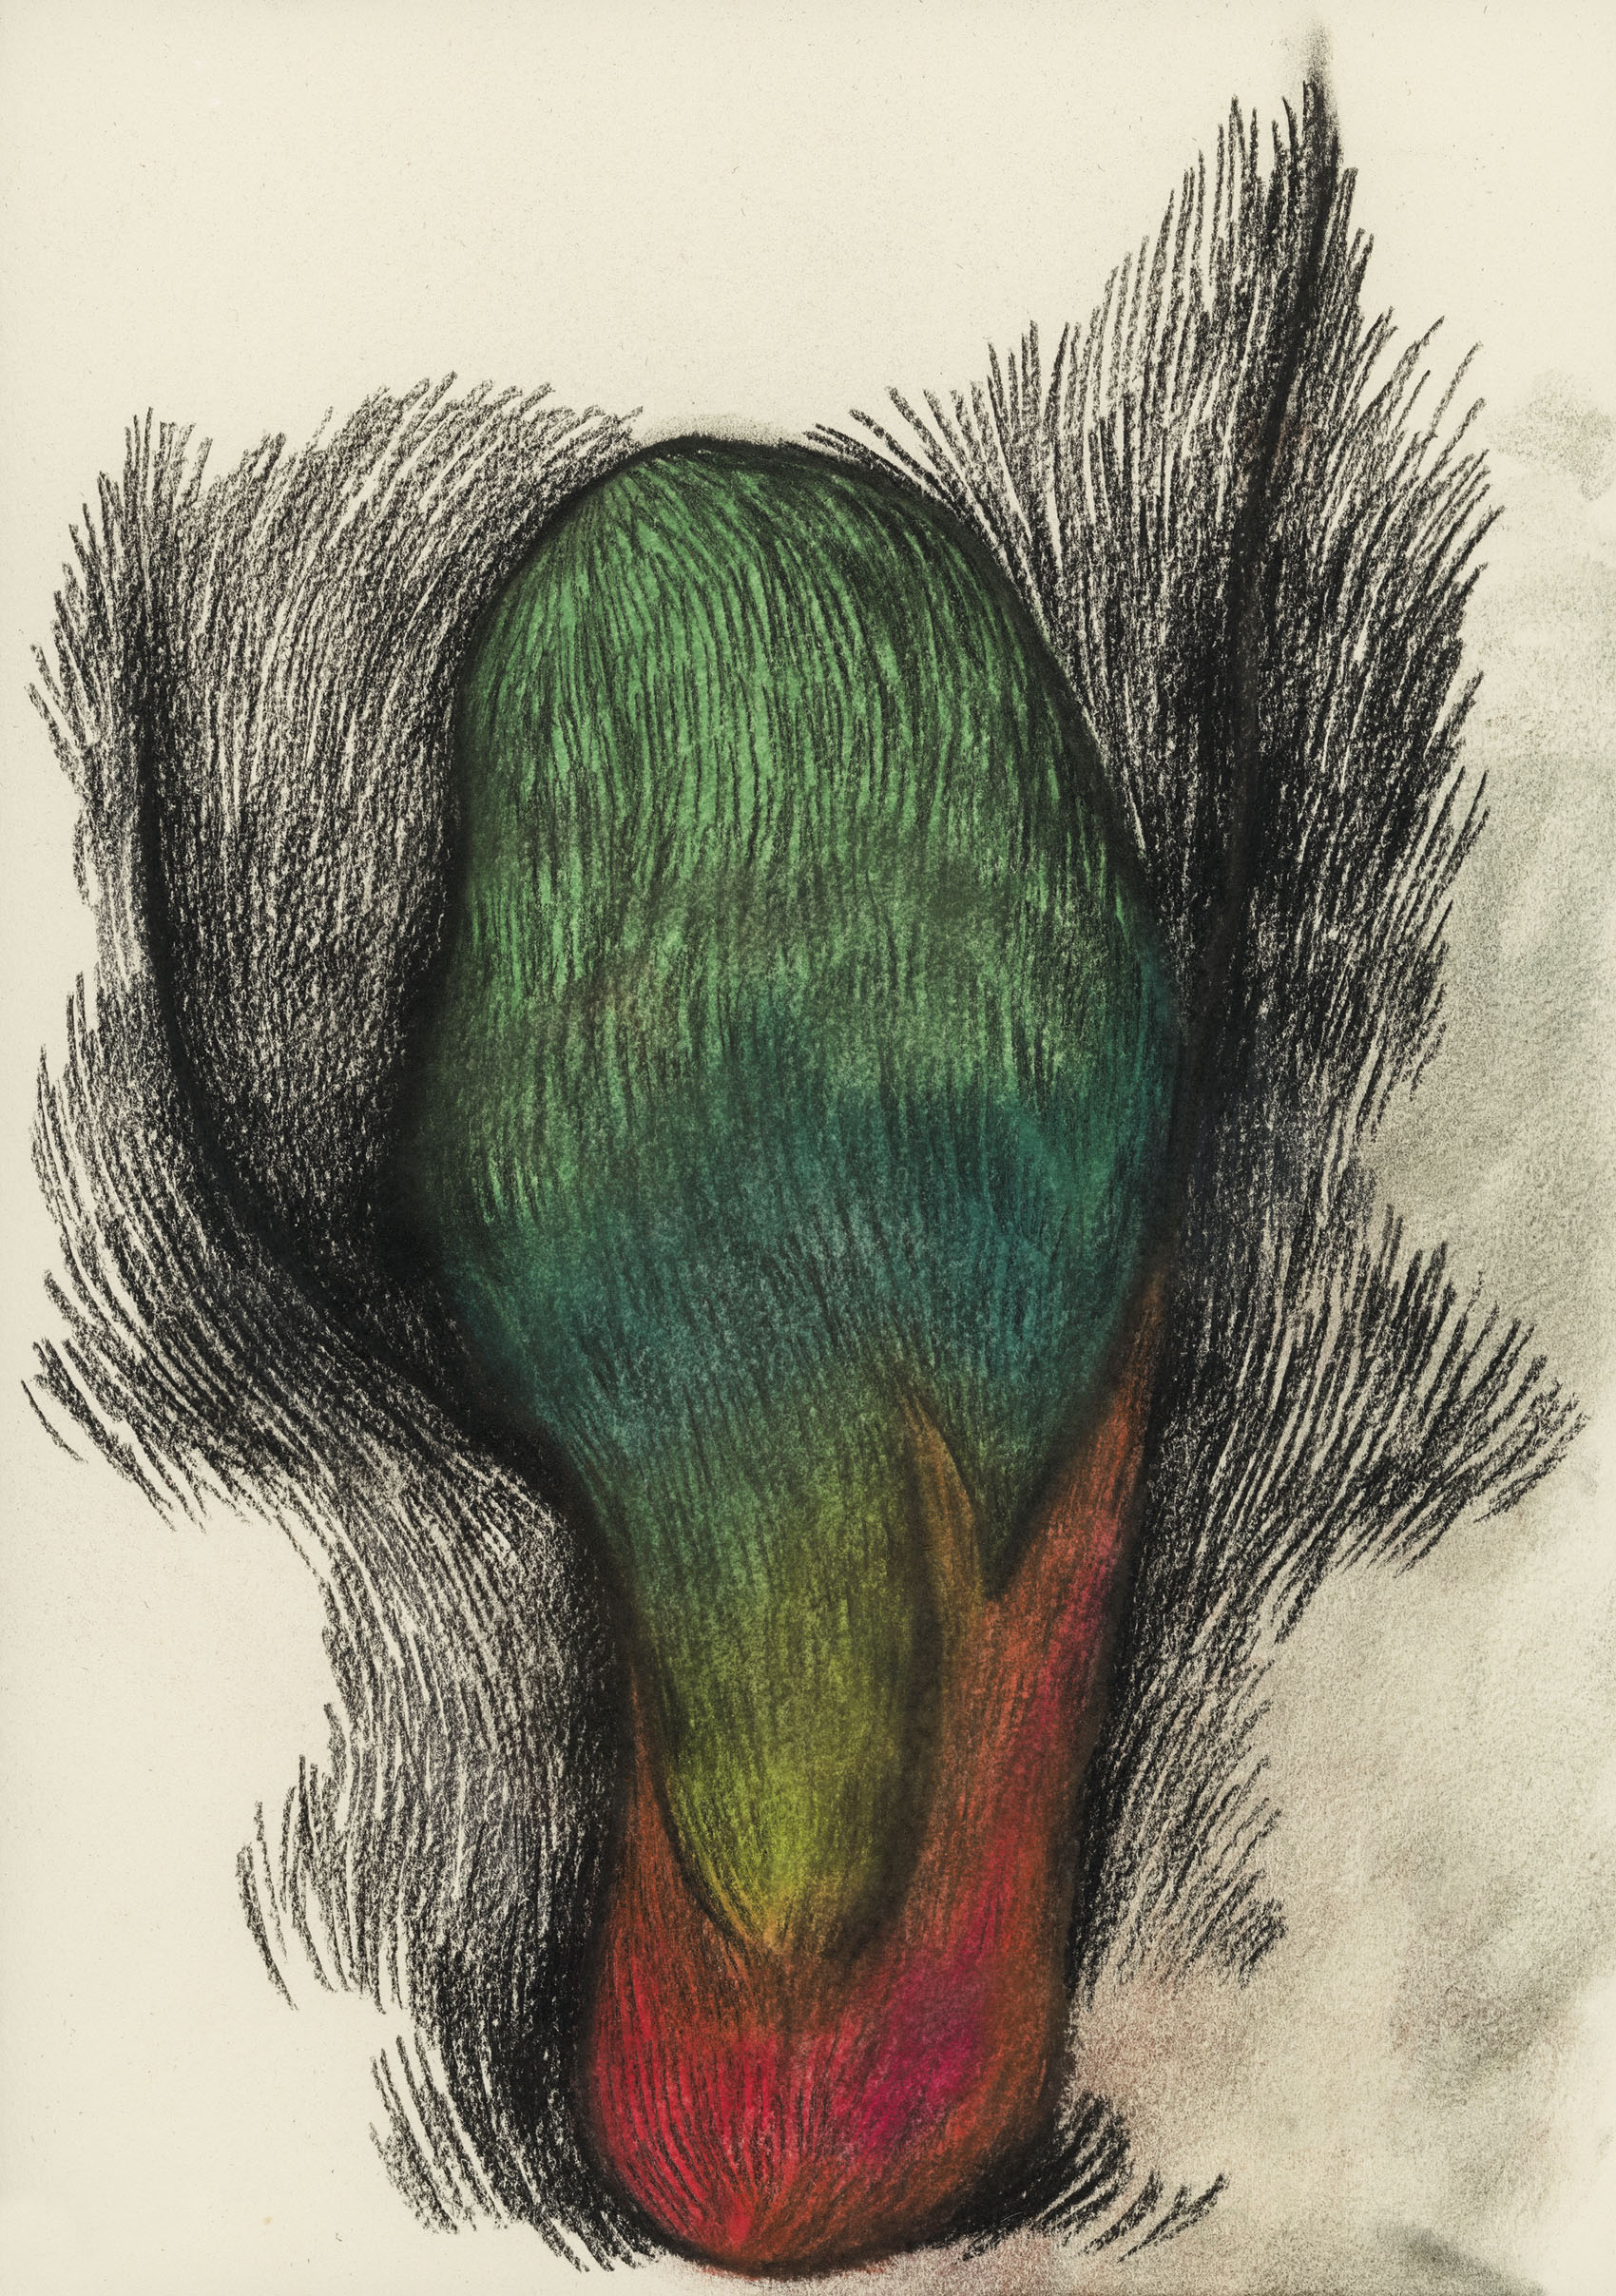 [16ds719] Drawong_conte on paper_23×31_2016.jpg